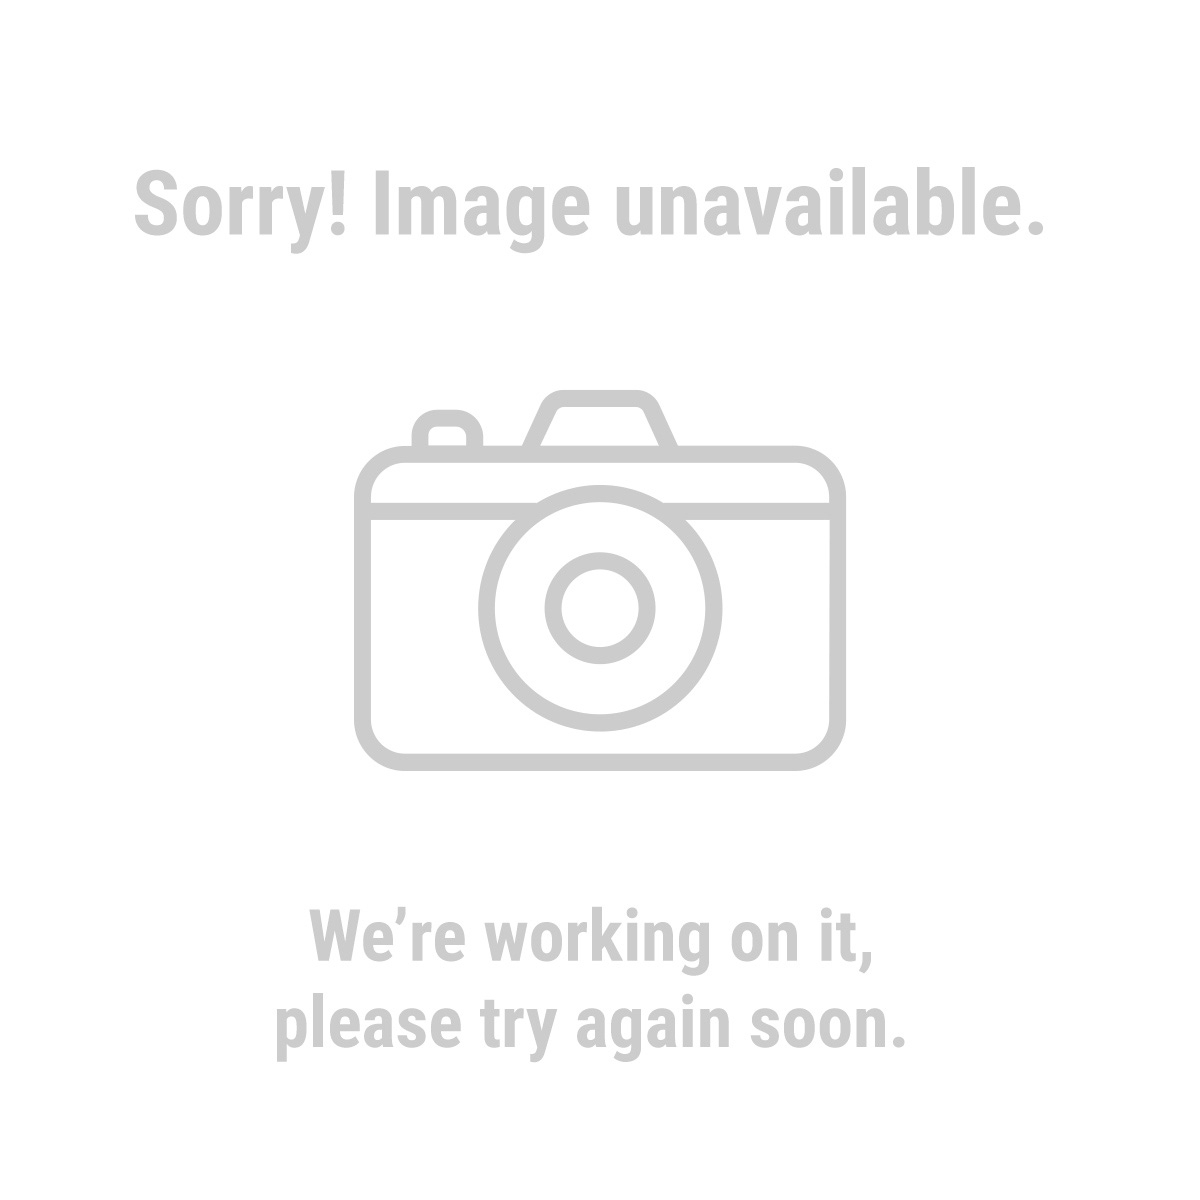 Bunker Hill Security 91006 1.51 cu. ft. Solid Steel Digital Floor Safe